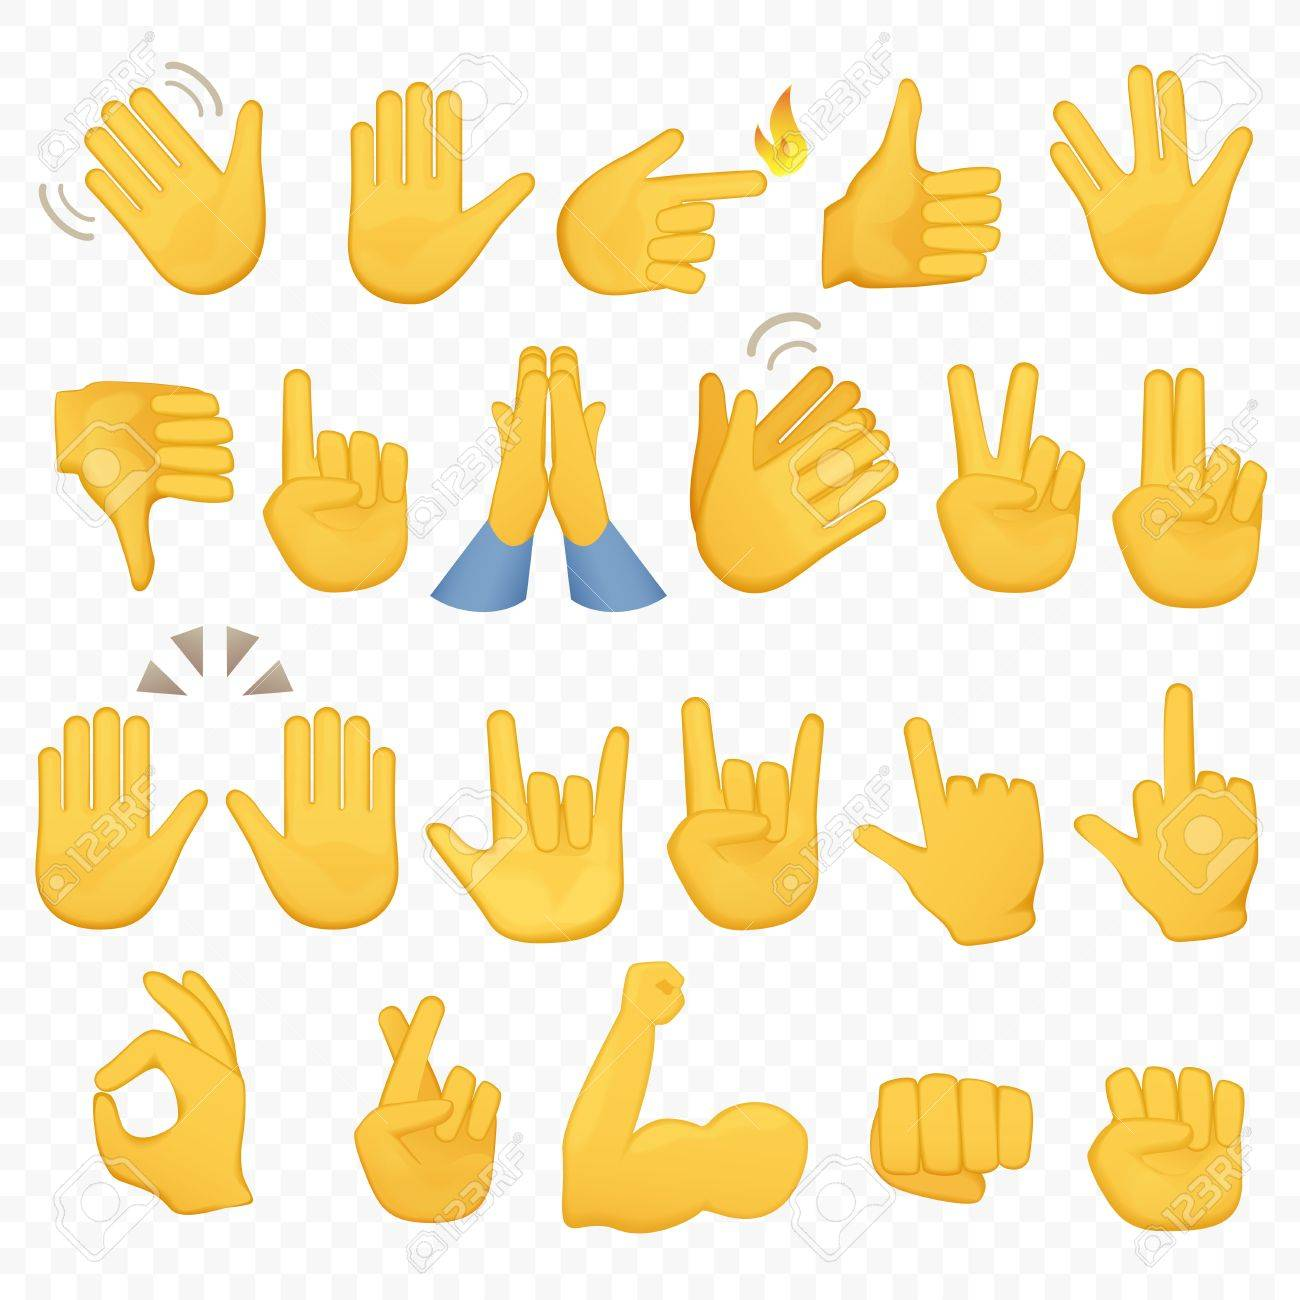 Set of hands icons and symbols. Emoji hand icons. Different gestures, hands, signals and signs, alpha background vector illustration. - 72780345